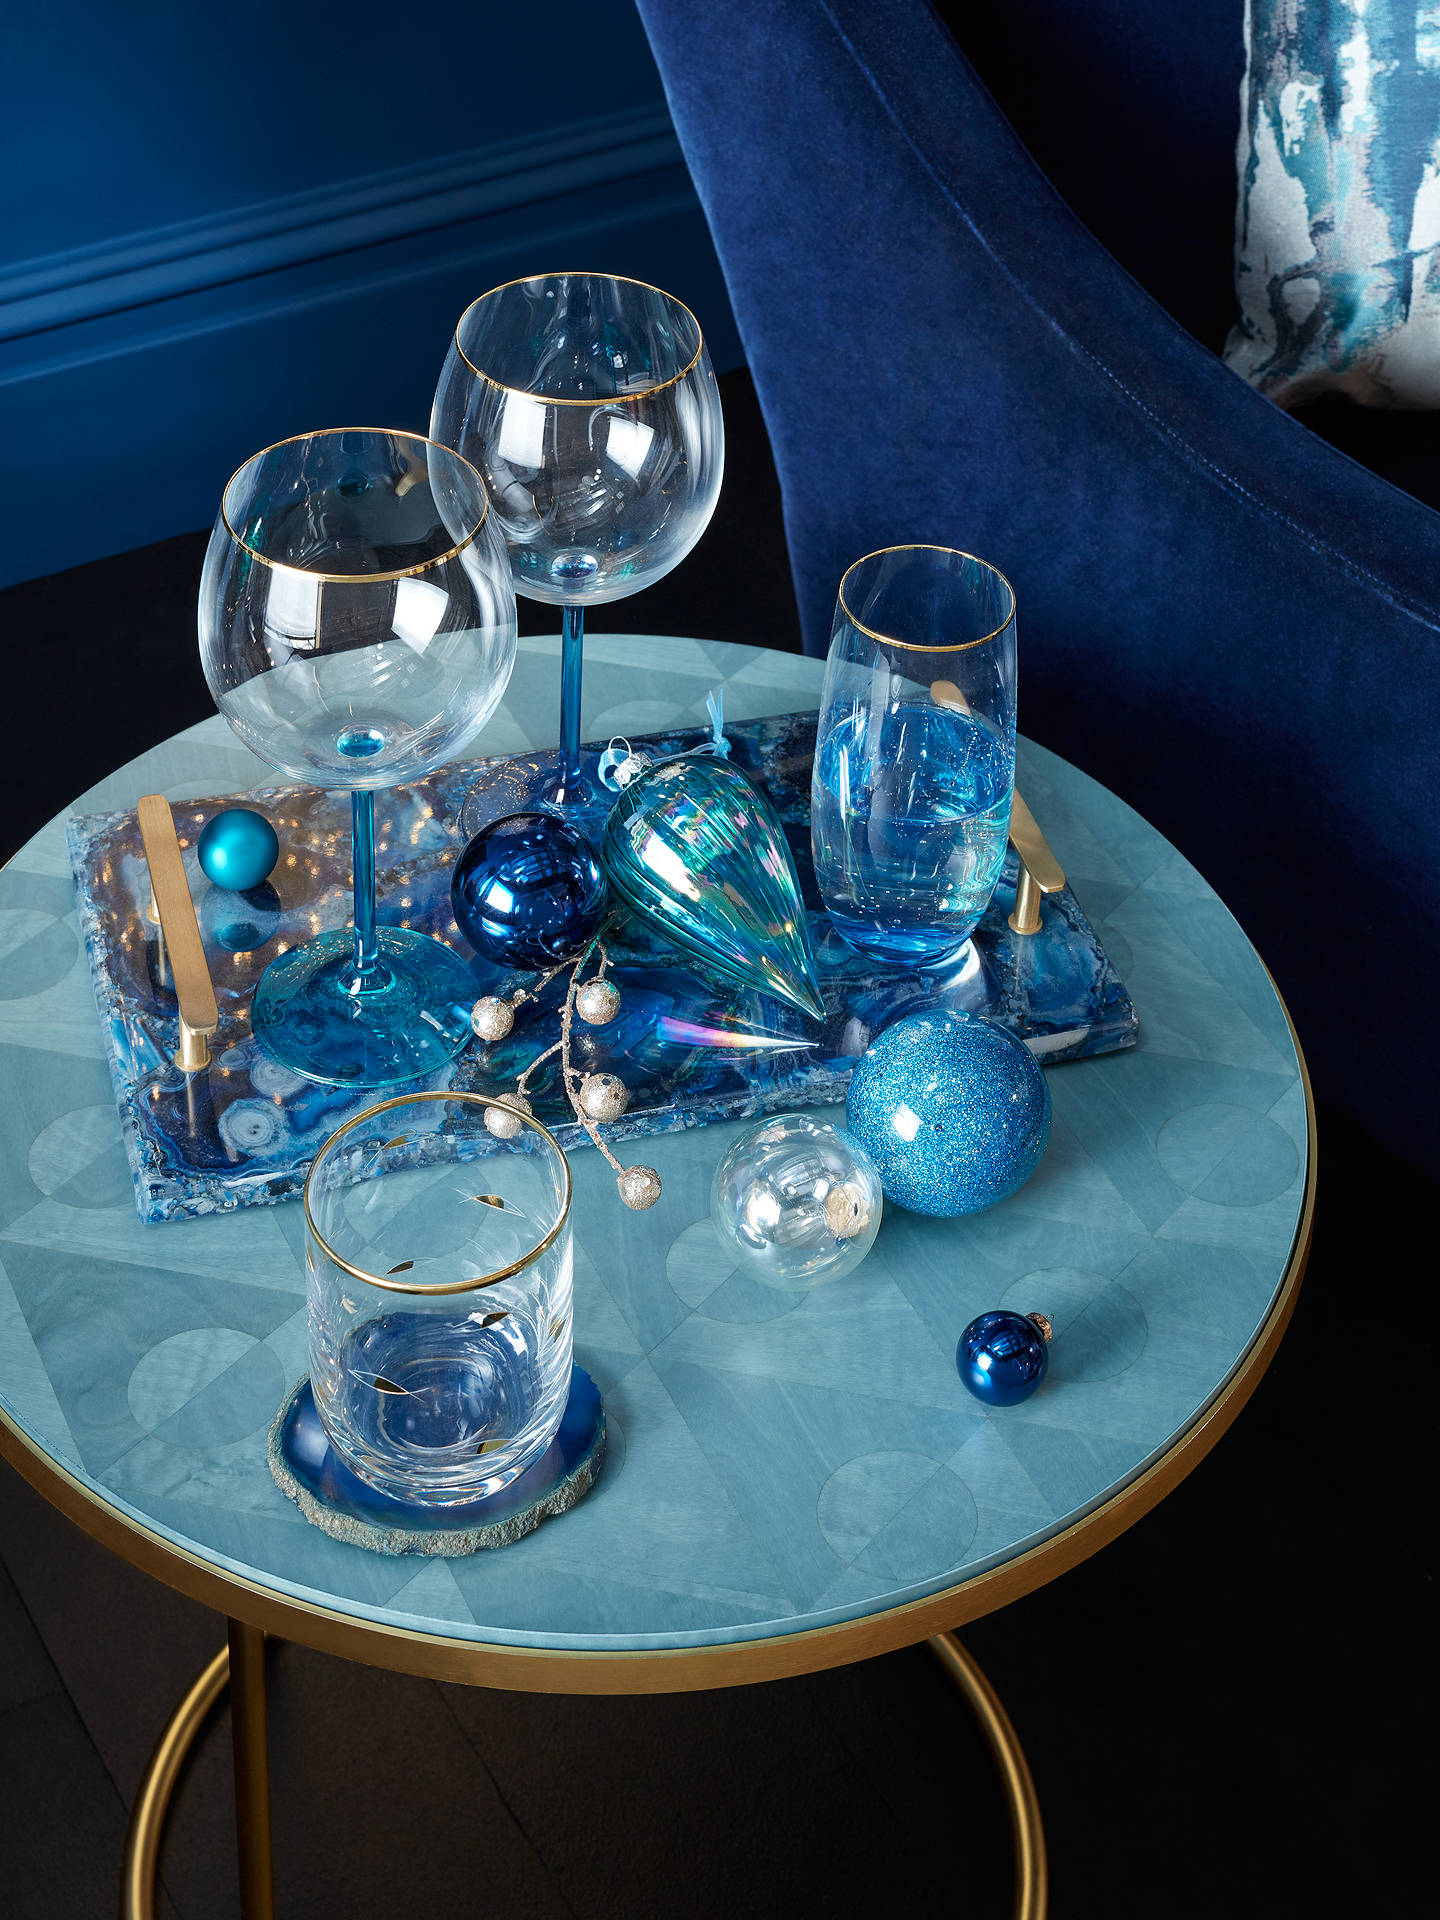 Buy John Lewis & Partners Gin Glass, 570ml, Blue Online at johnlewis.com